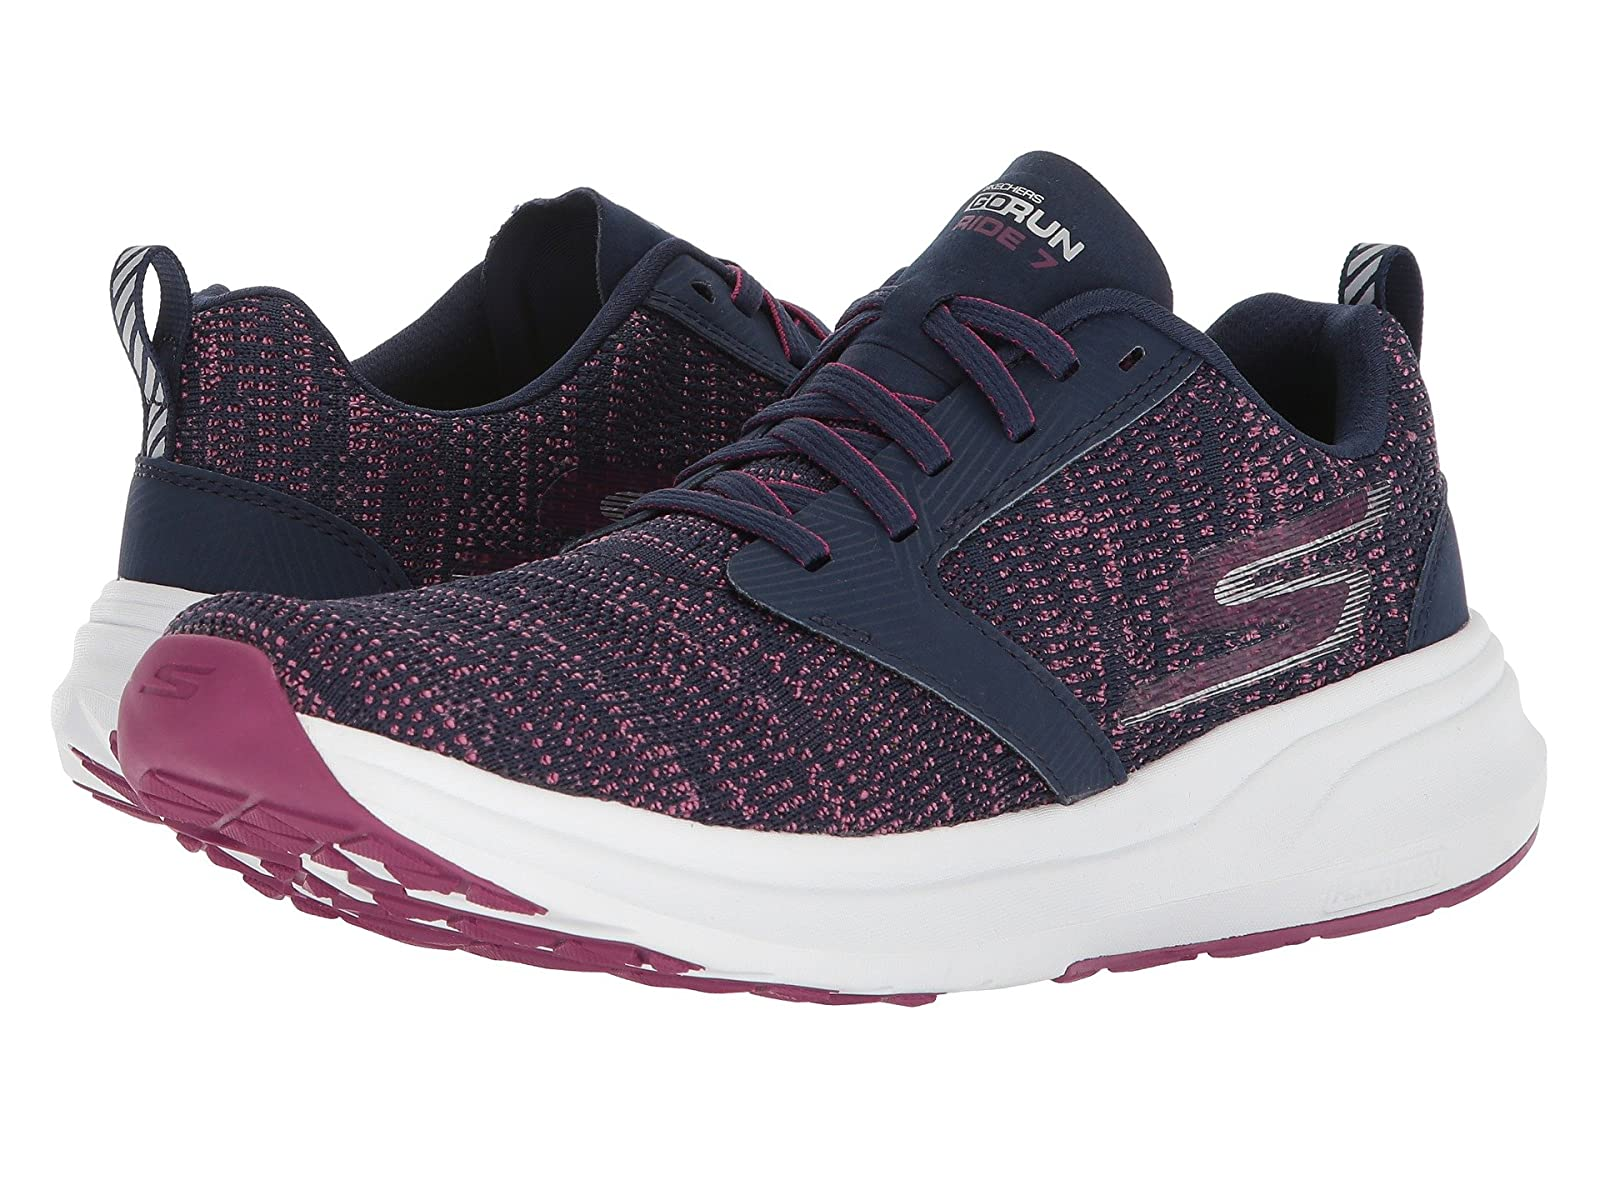 SKECHERS Go Run Ride 7Atmospheric grades have affordable shoes